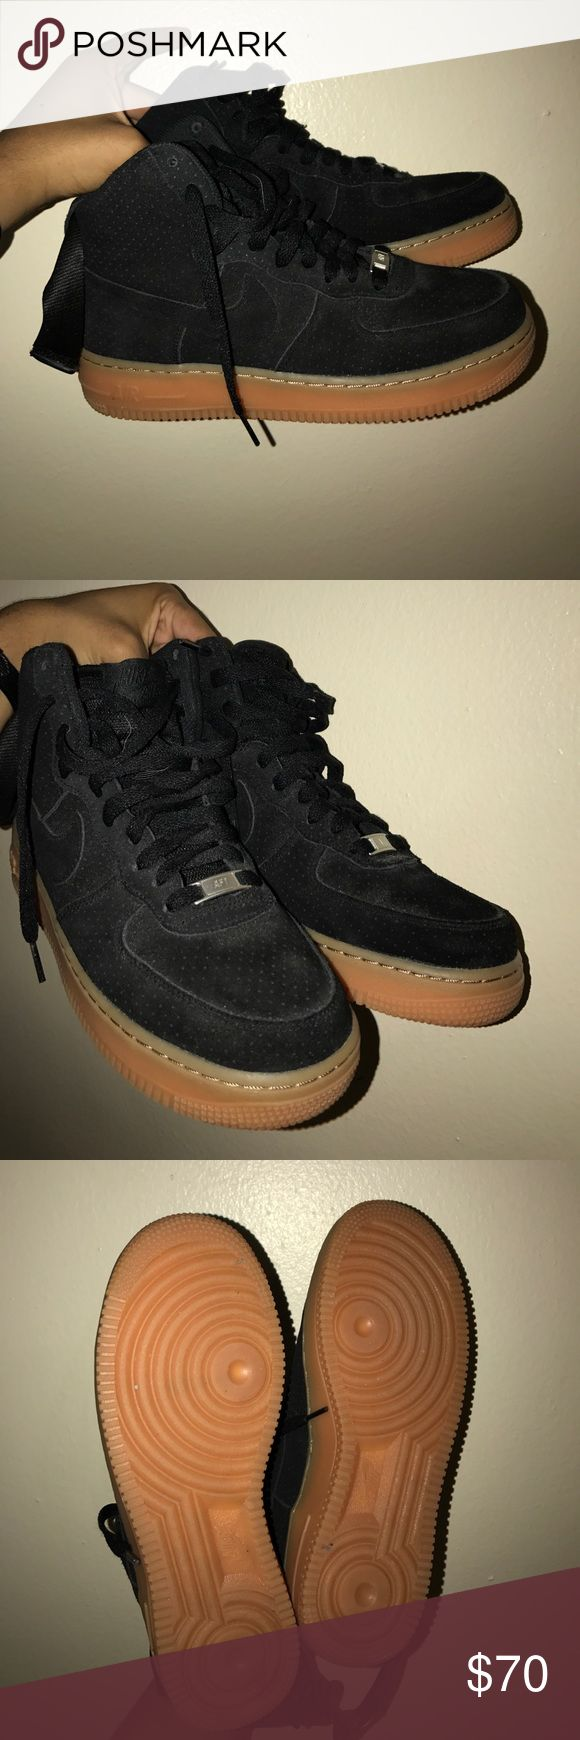 Women's Nike Air force 1 Black Gum bottom. Women's Nike Air Force 1s, worn once! In great condition. Comes with original box. Nike Shoes Sneakers